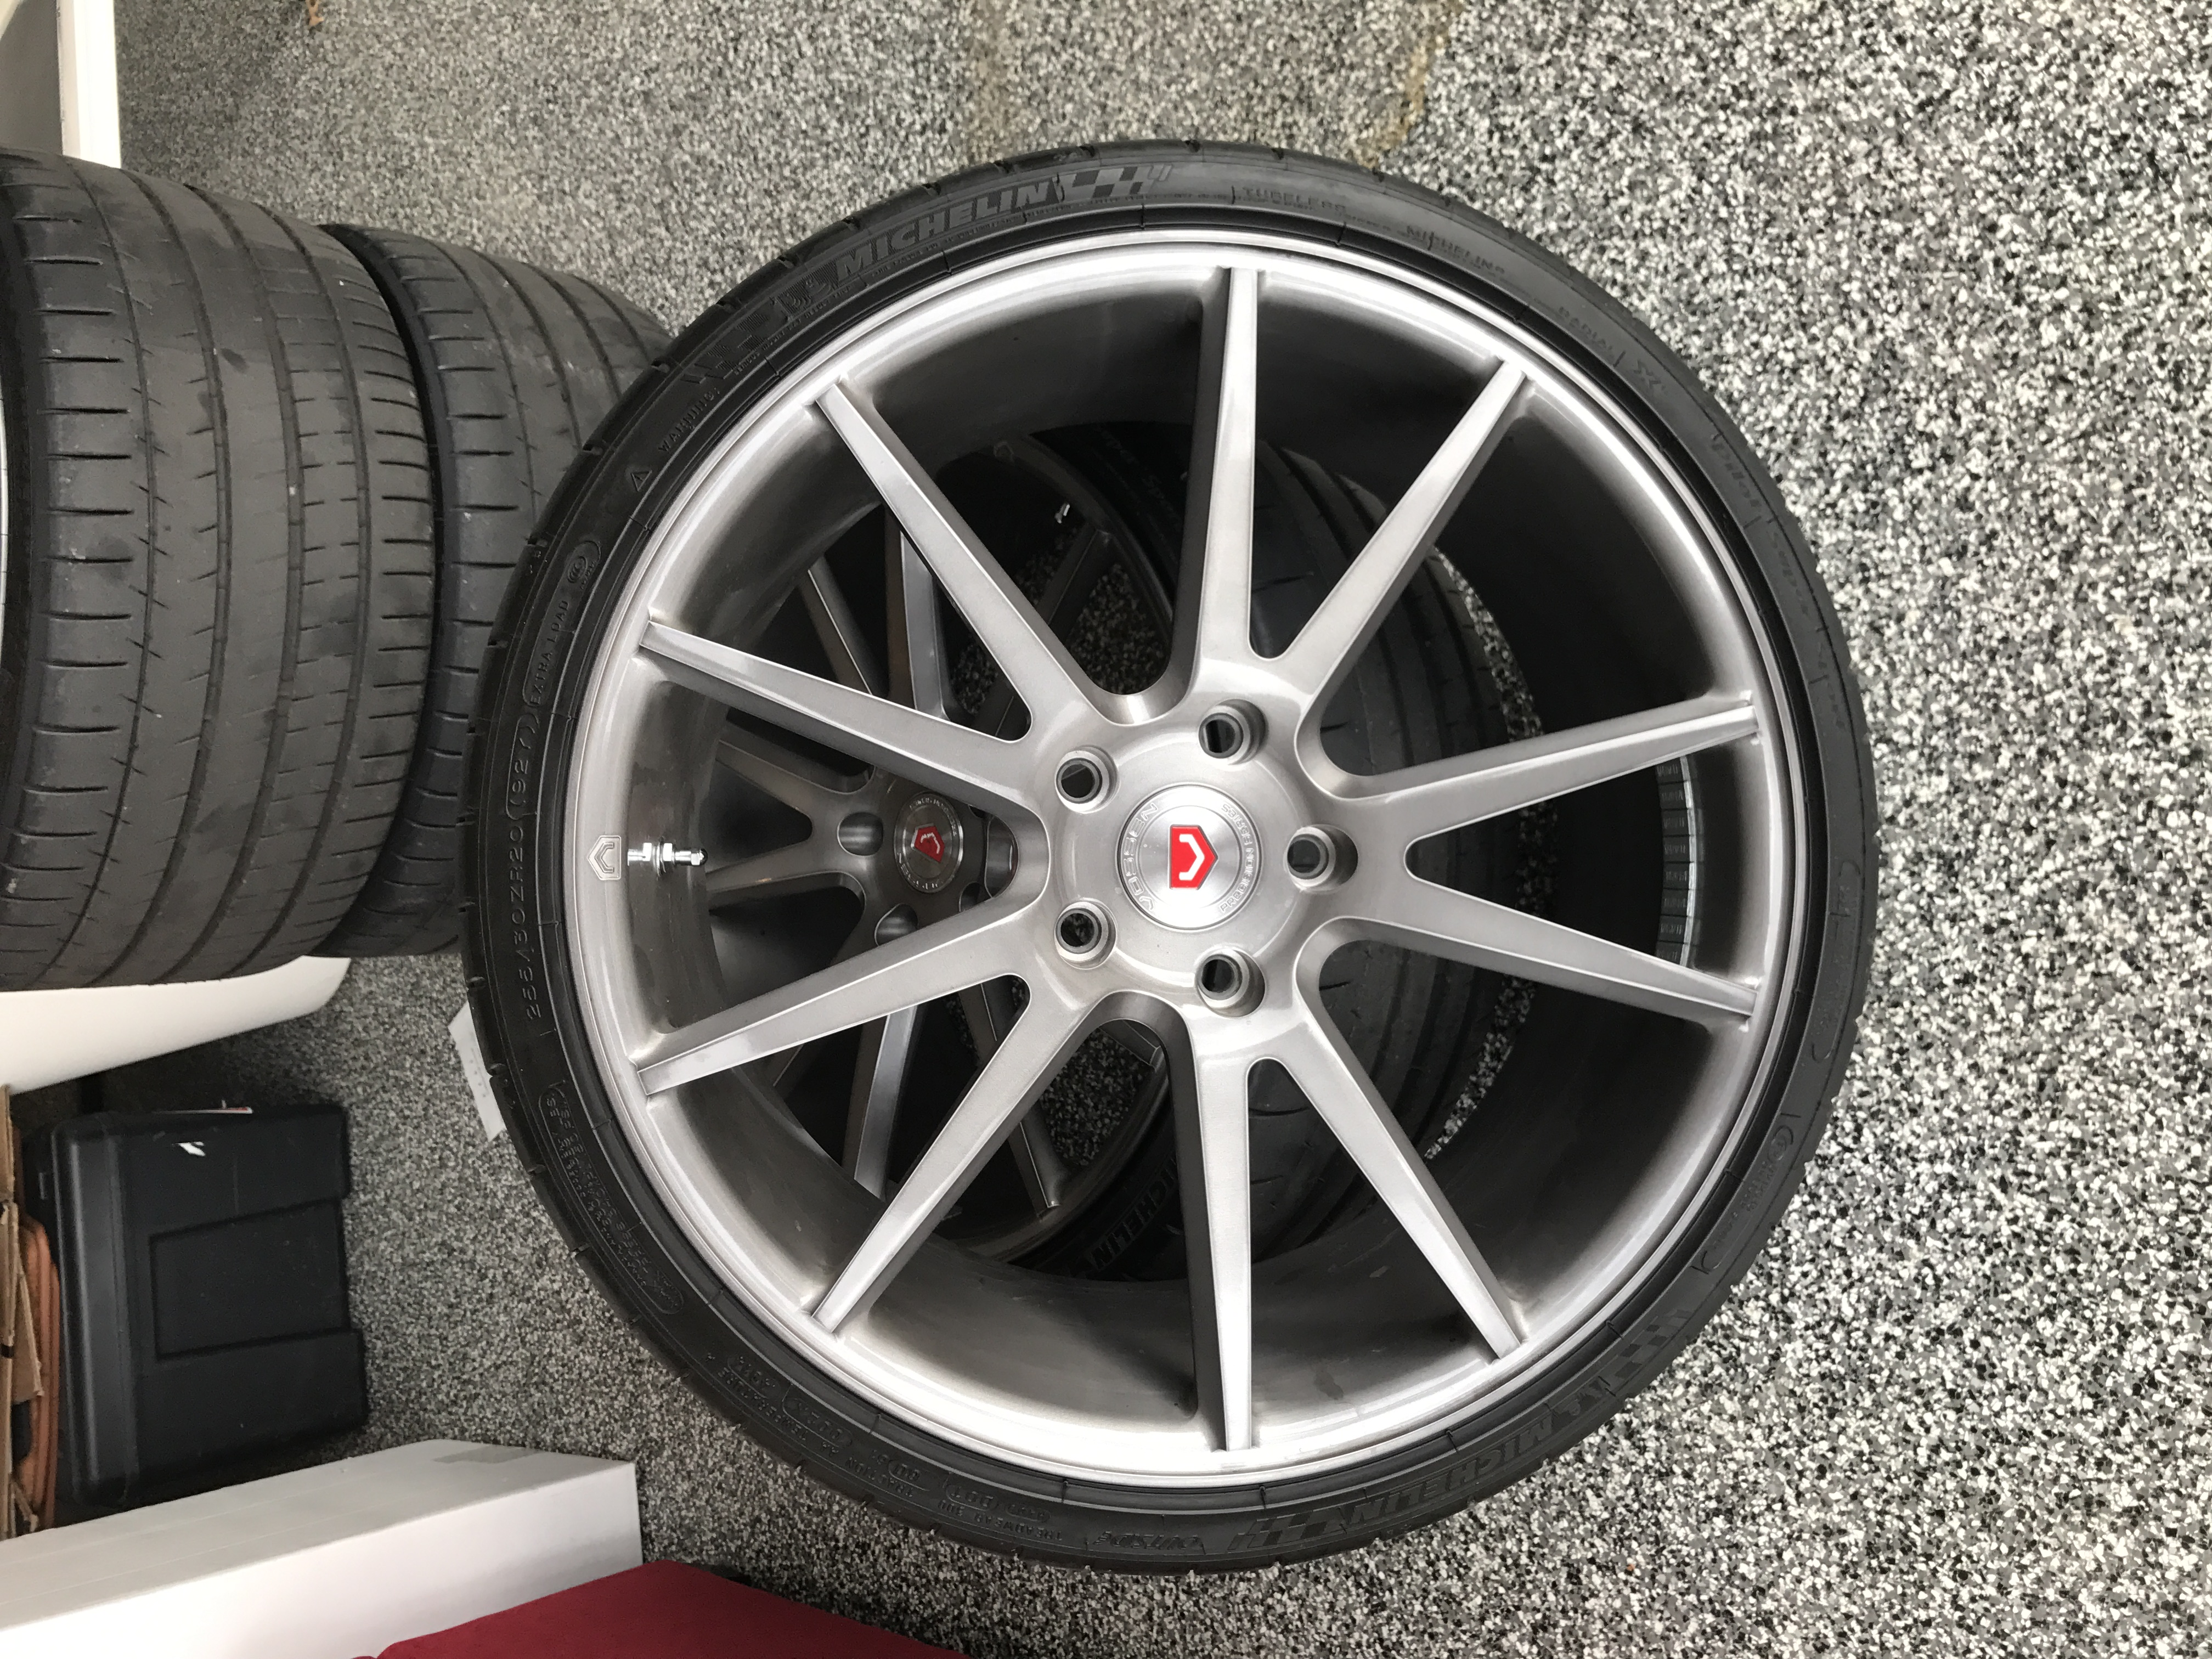 for sale 21 20 vossen stingray wheel tire set. Black Bedroom Furniture Sets. Home Design Ideas